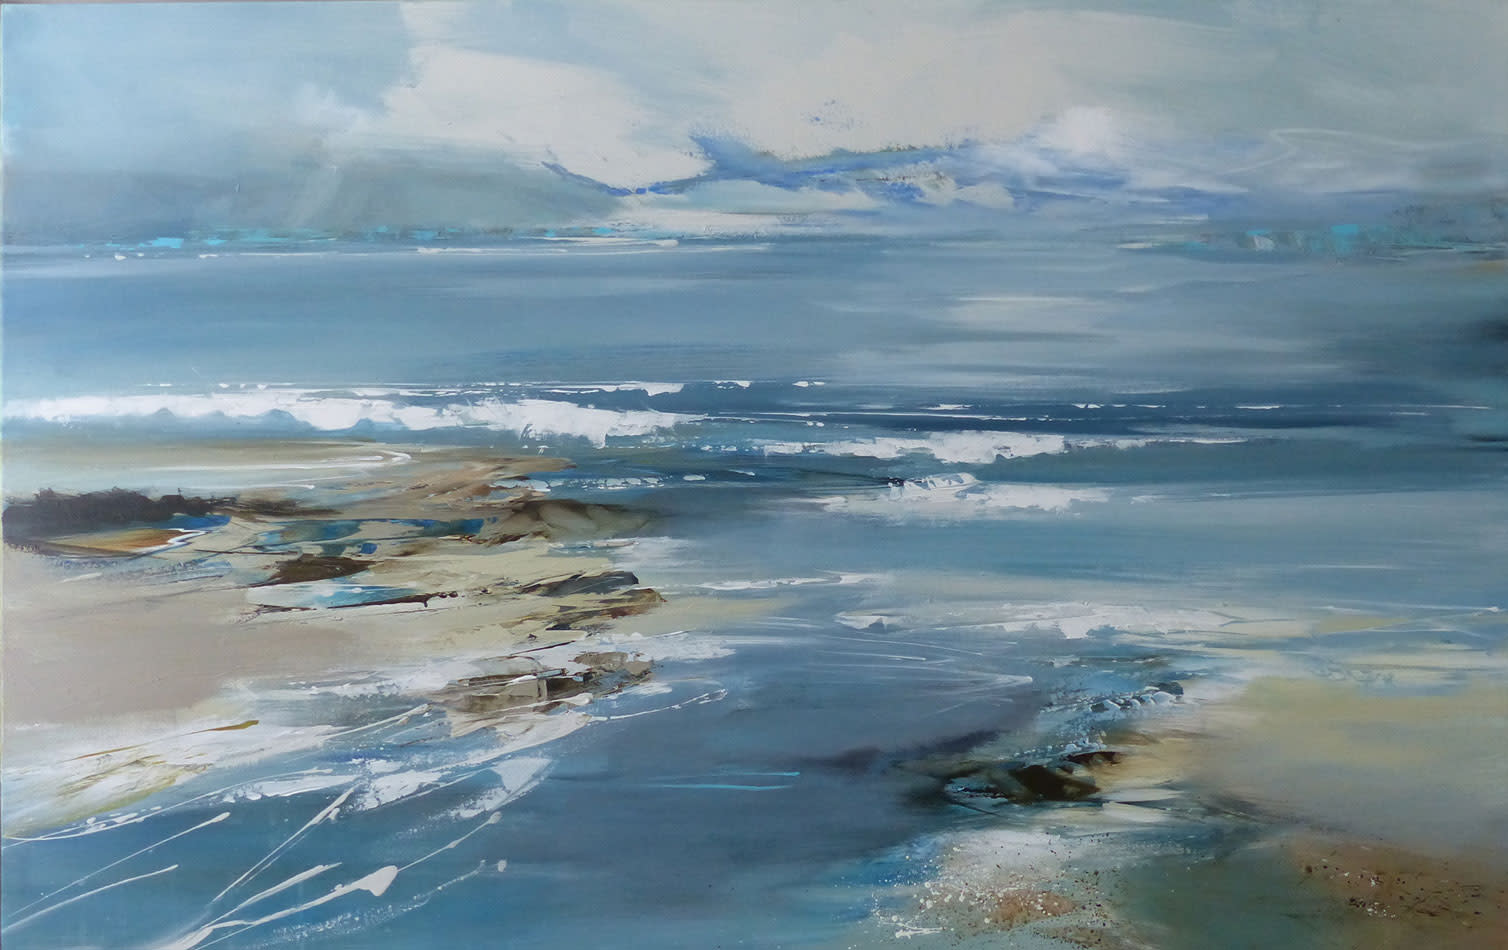 "<span class=""link fancybox-details-link""><a href=""/artists/92-jenny-hirst/works/6350-jenny-hirst-porthkidney-beach-2019/"">View Detail Page</a></span><div class=""artist""><strong>Jenny Hirst</strong></div> <div class=""title""><em>Porthkidney Beach</em>, 2019</div> <div class=""signed_and_dated"">Signed</div> <div class=""medium"">Acrylic on Canvas</div> <div class=""dimensions"">h. 60cm x w. 90cm</div><div class=""copyright_line"">Own Art: £140 x 10 Months, 0% APR</div>"